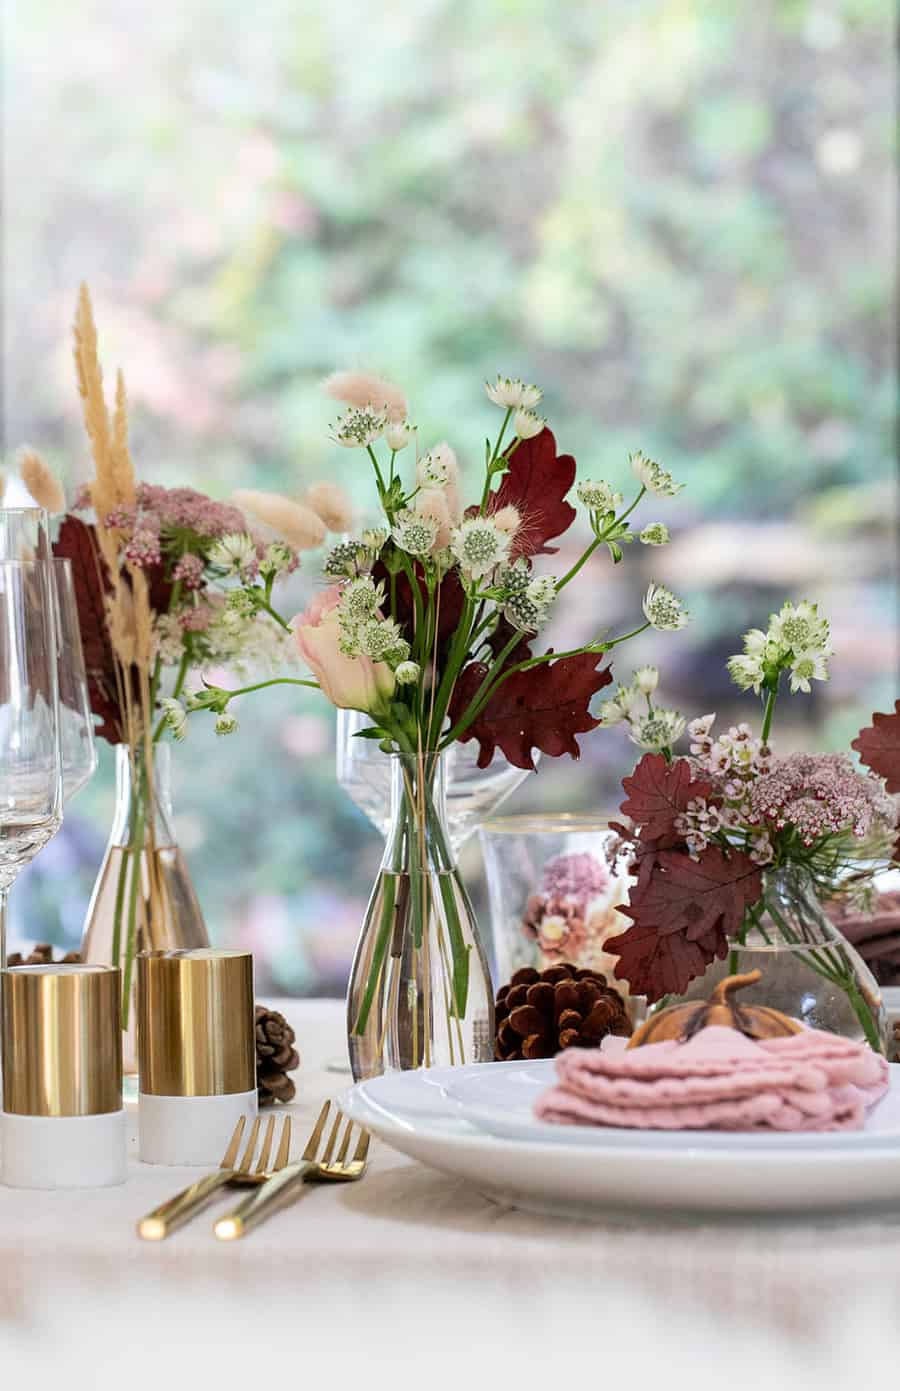 Bud vases with flowers, salt and pepper shaker and gold flatware.